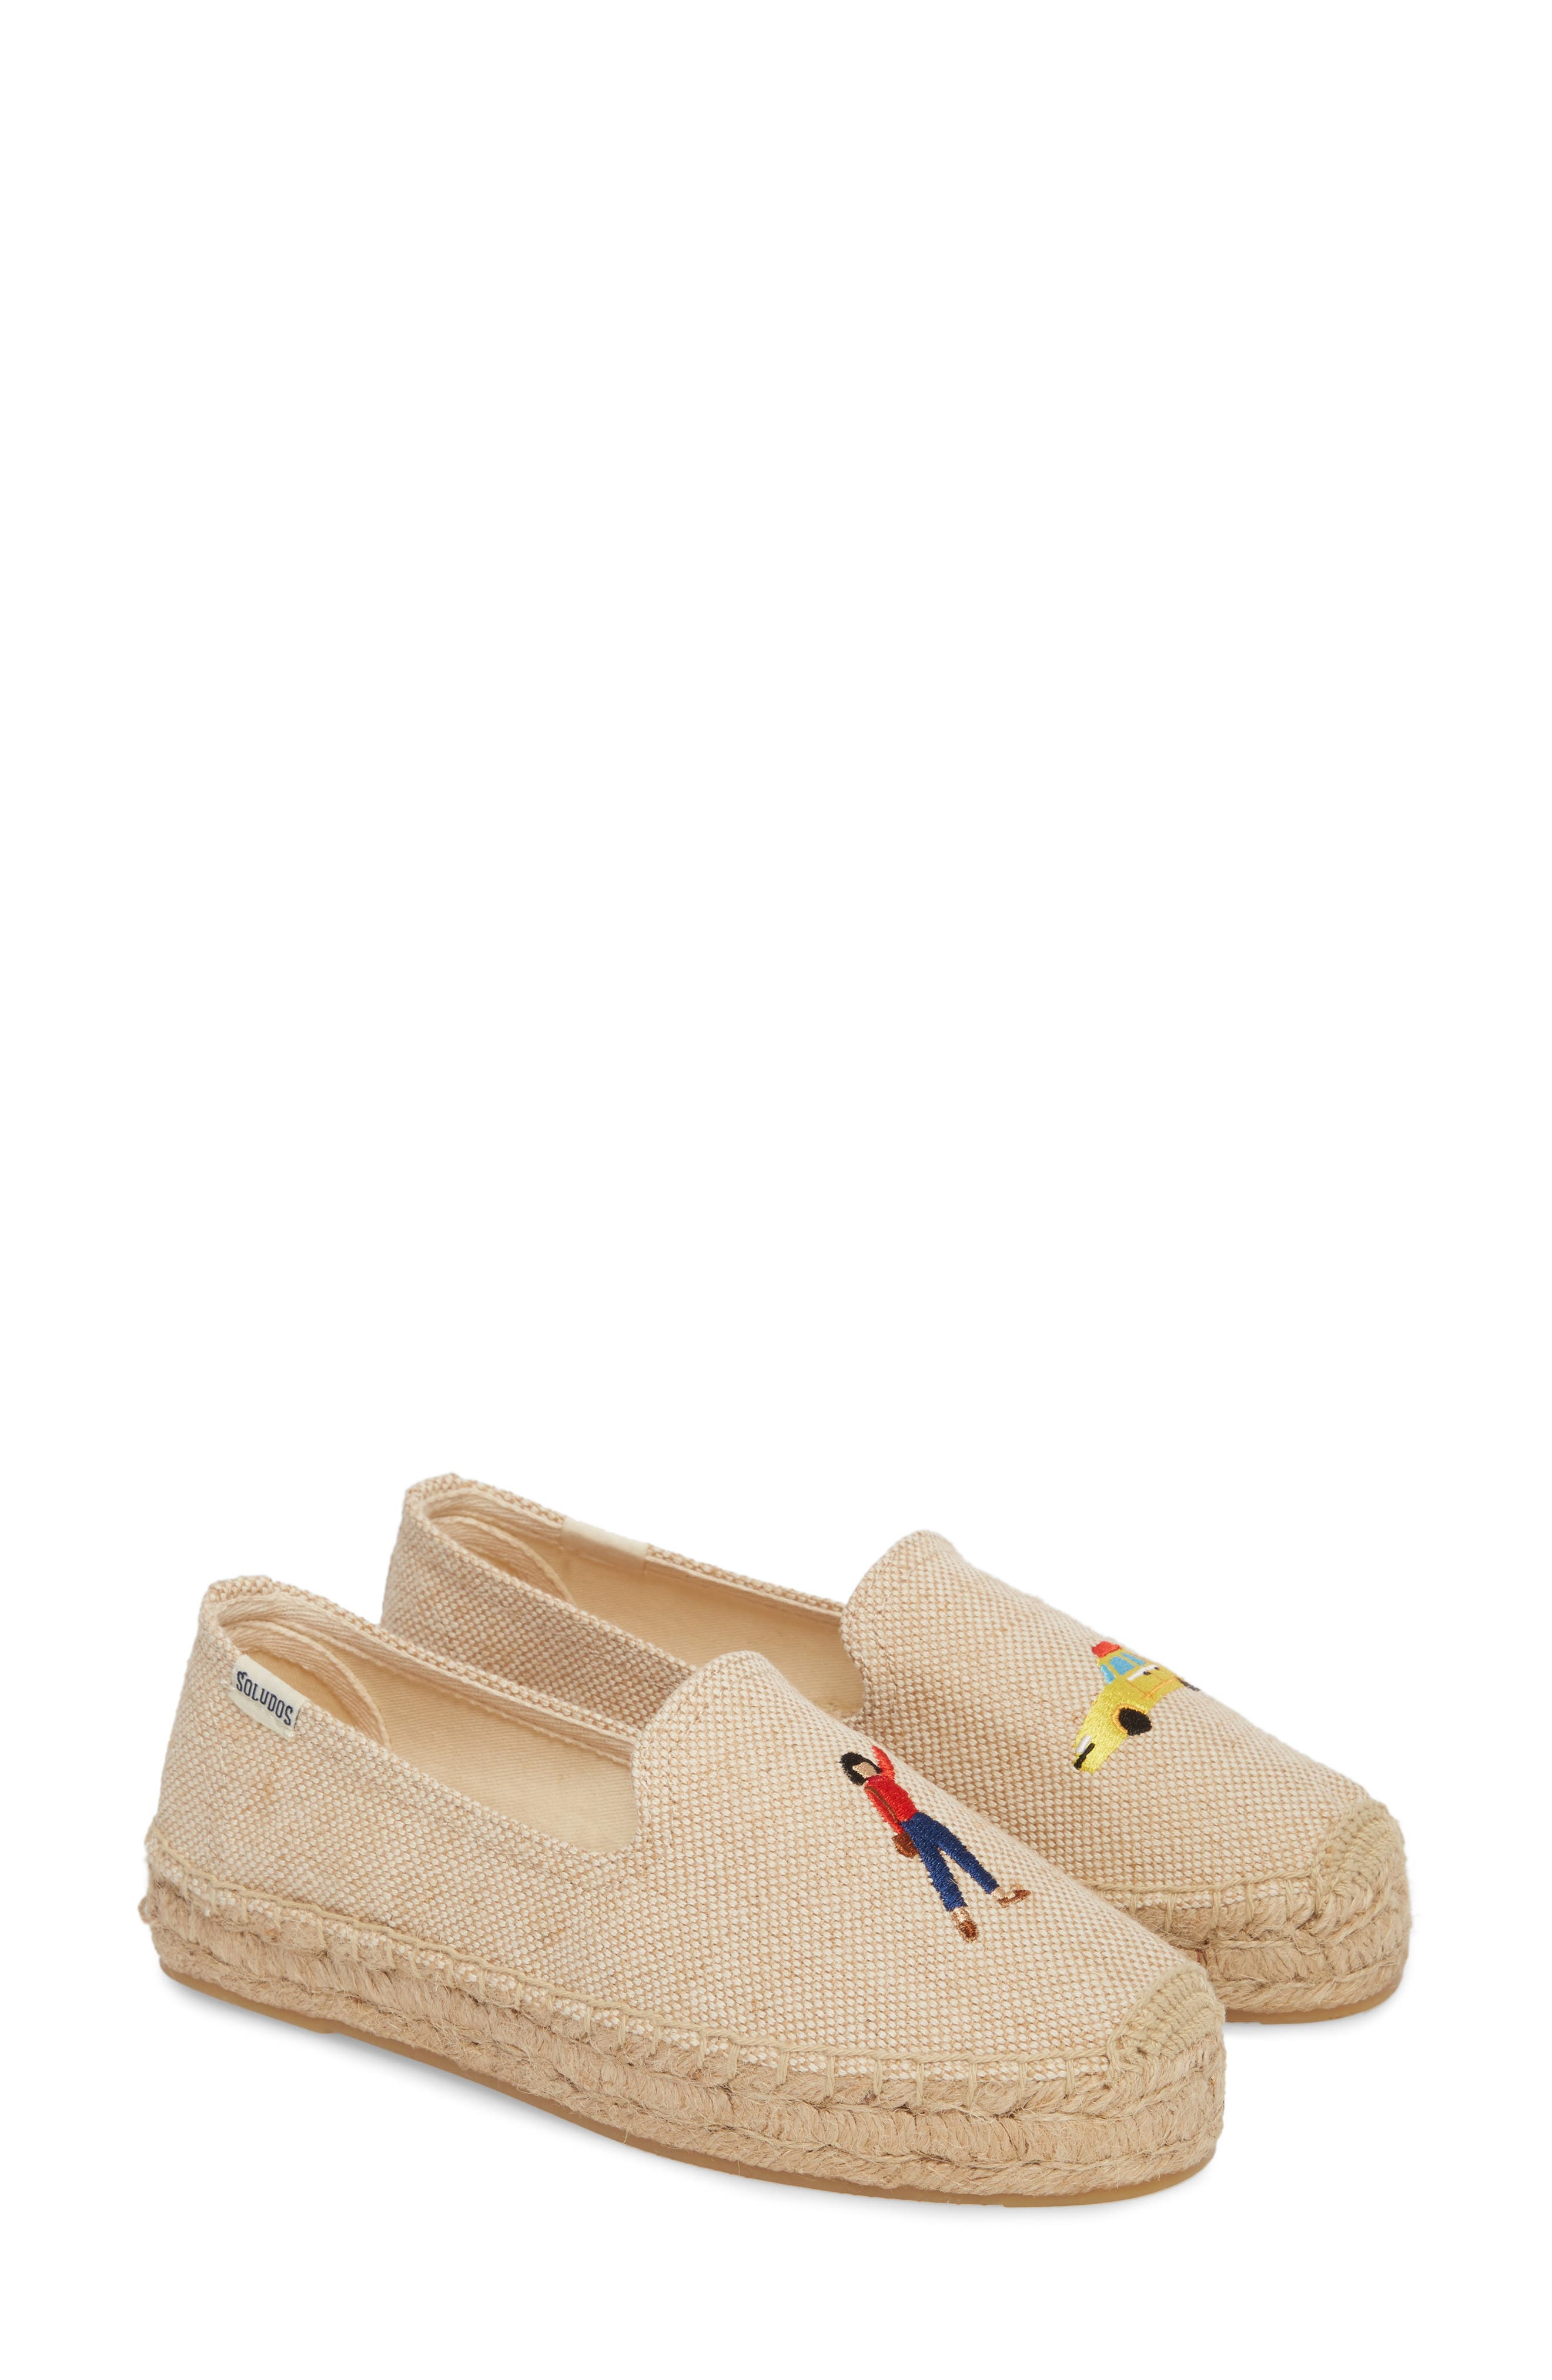 Taxi Embroidered Platform Espadrille,                             Main thumbnail 1, color,                             250